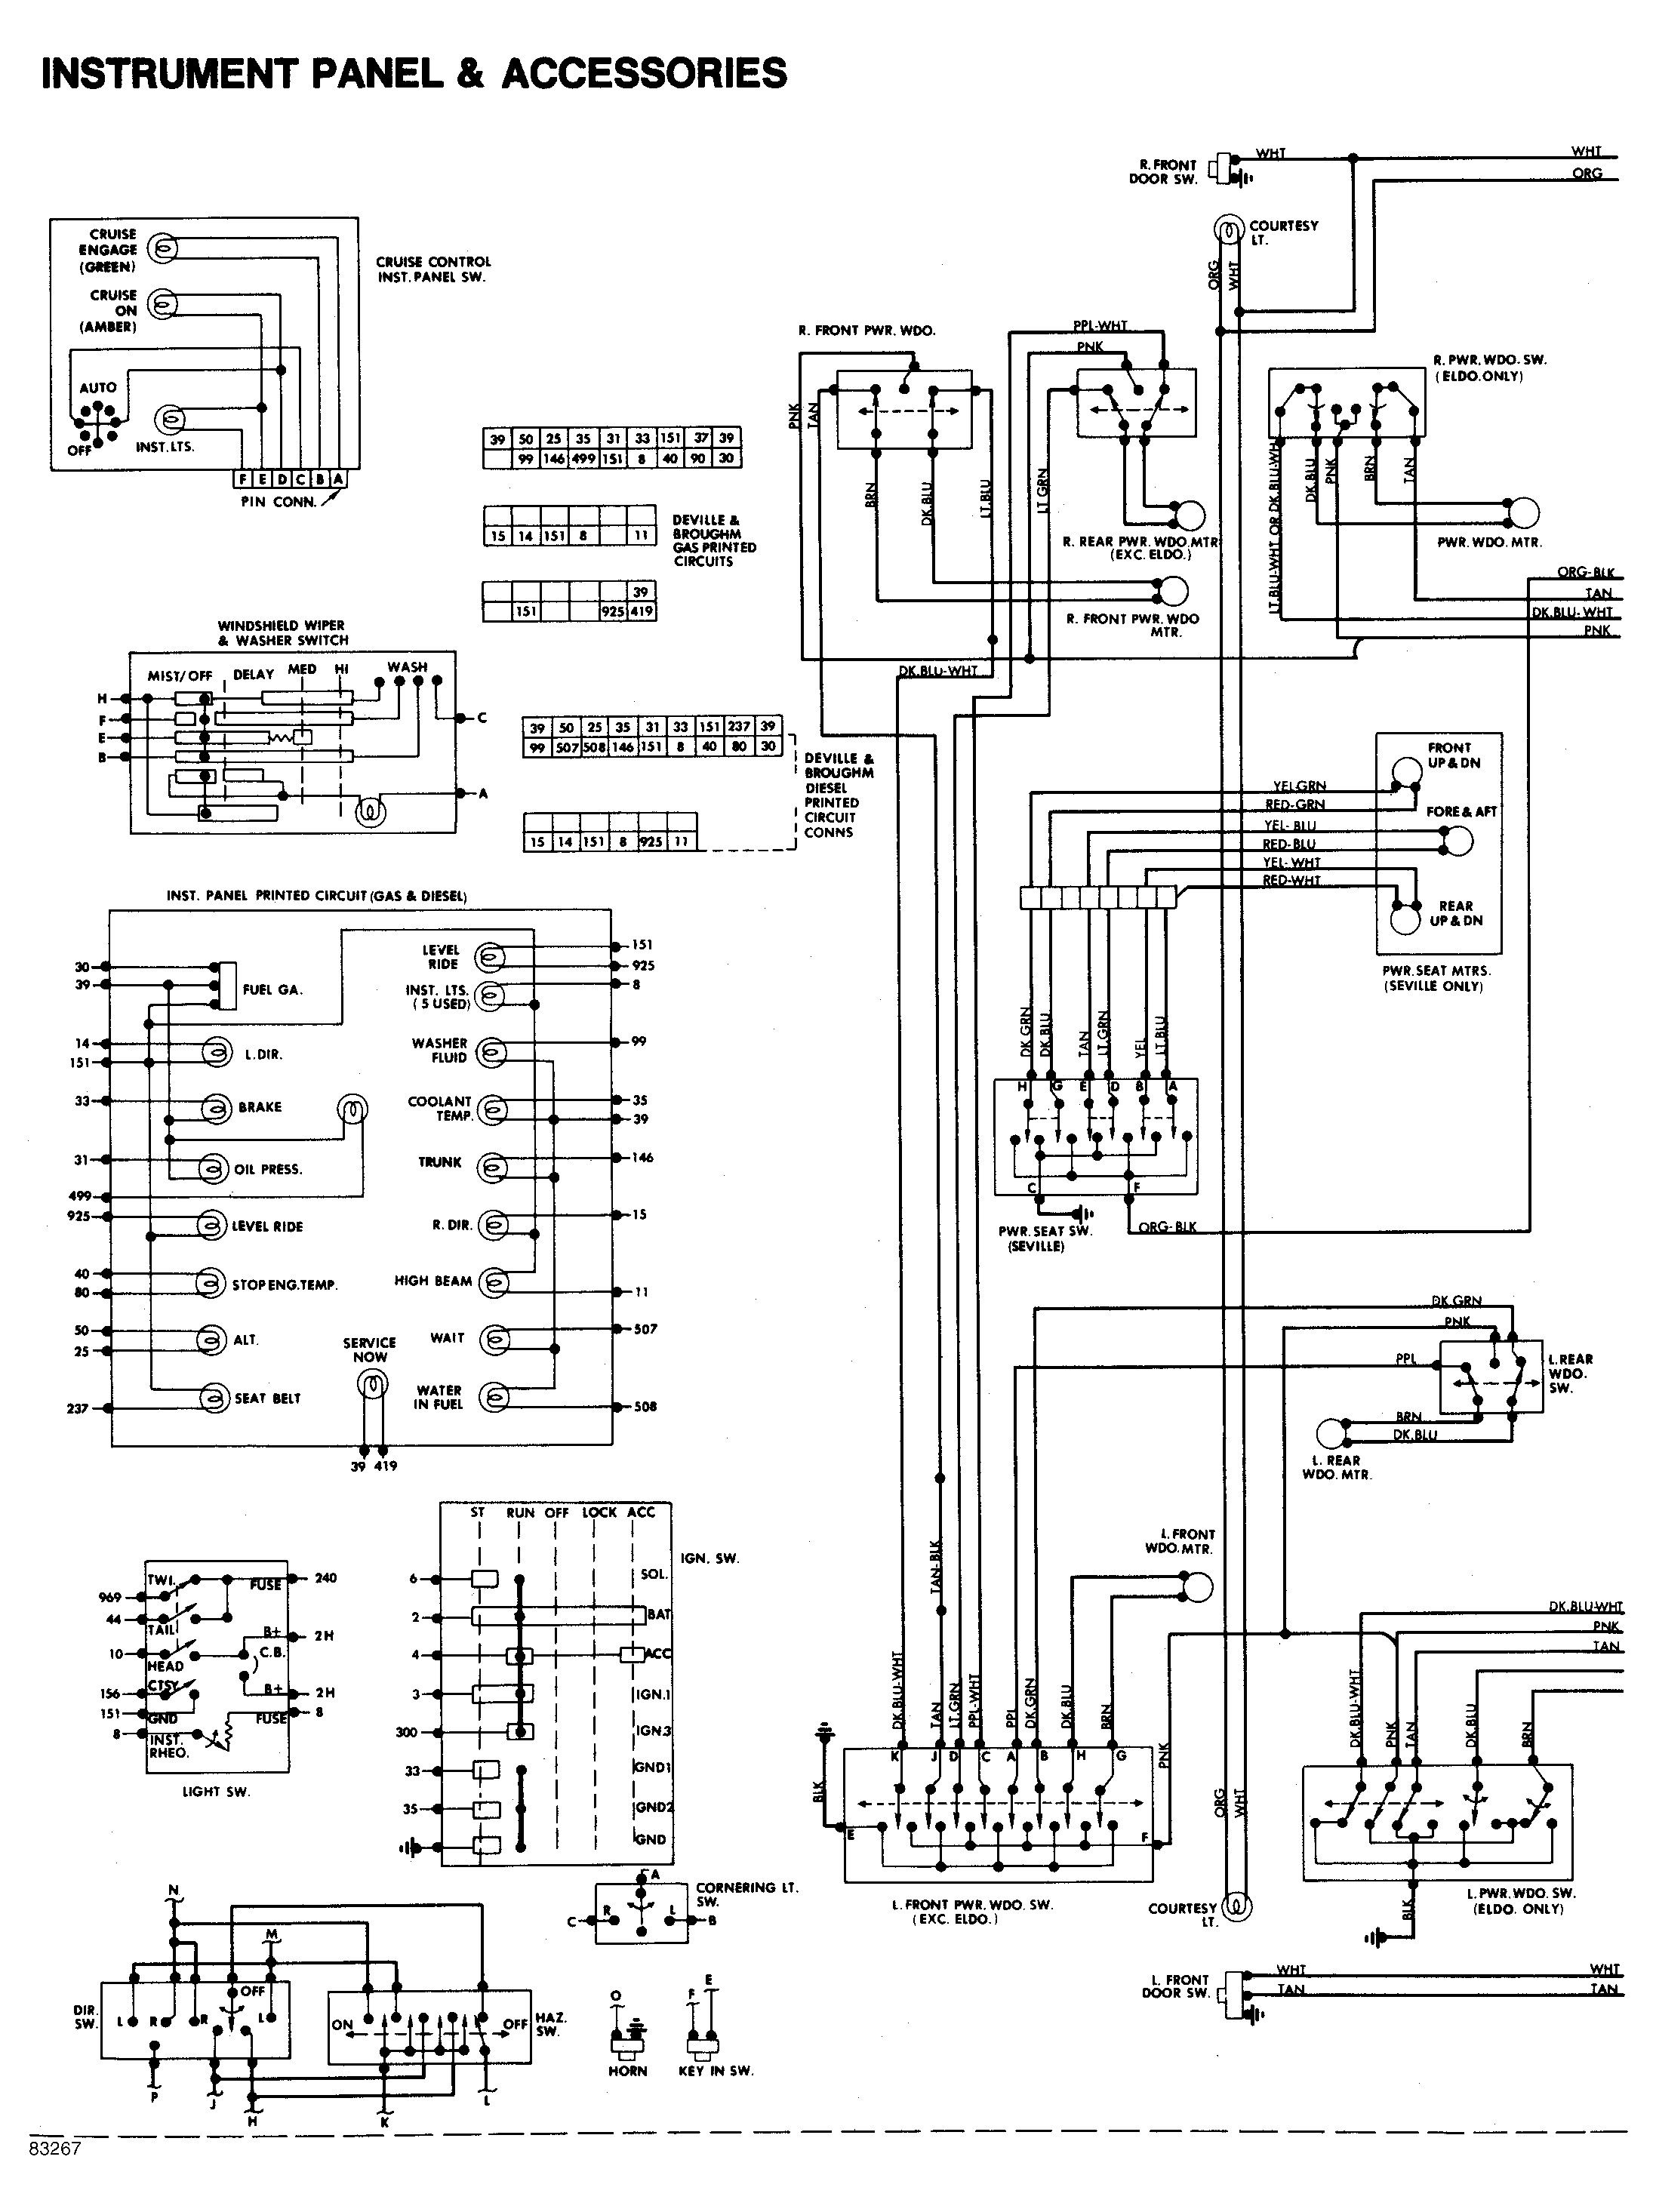 e0ac33f29e6bbc41e87e8c2fc31df081  Accord Ac Wiring Diagram For Keyless Install on